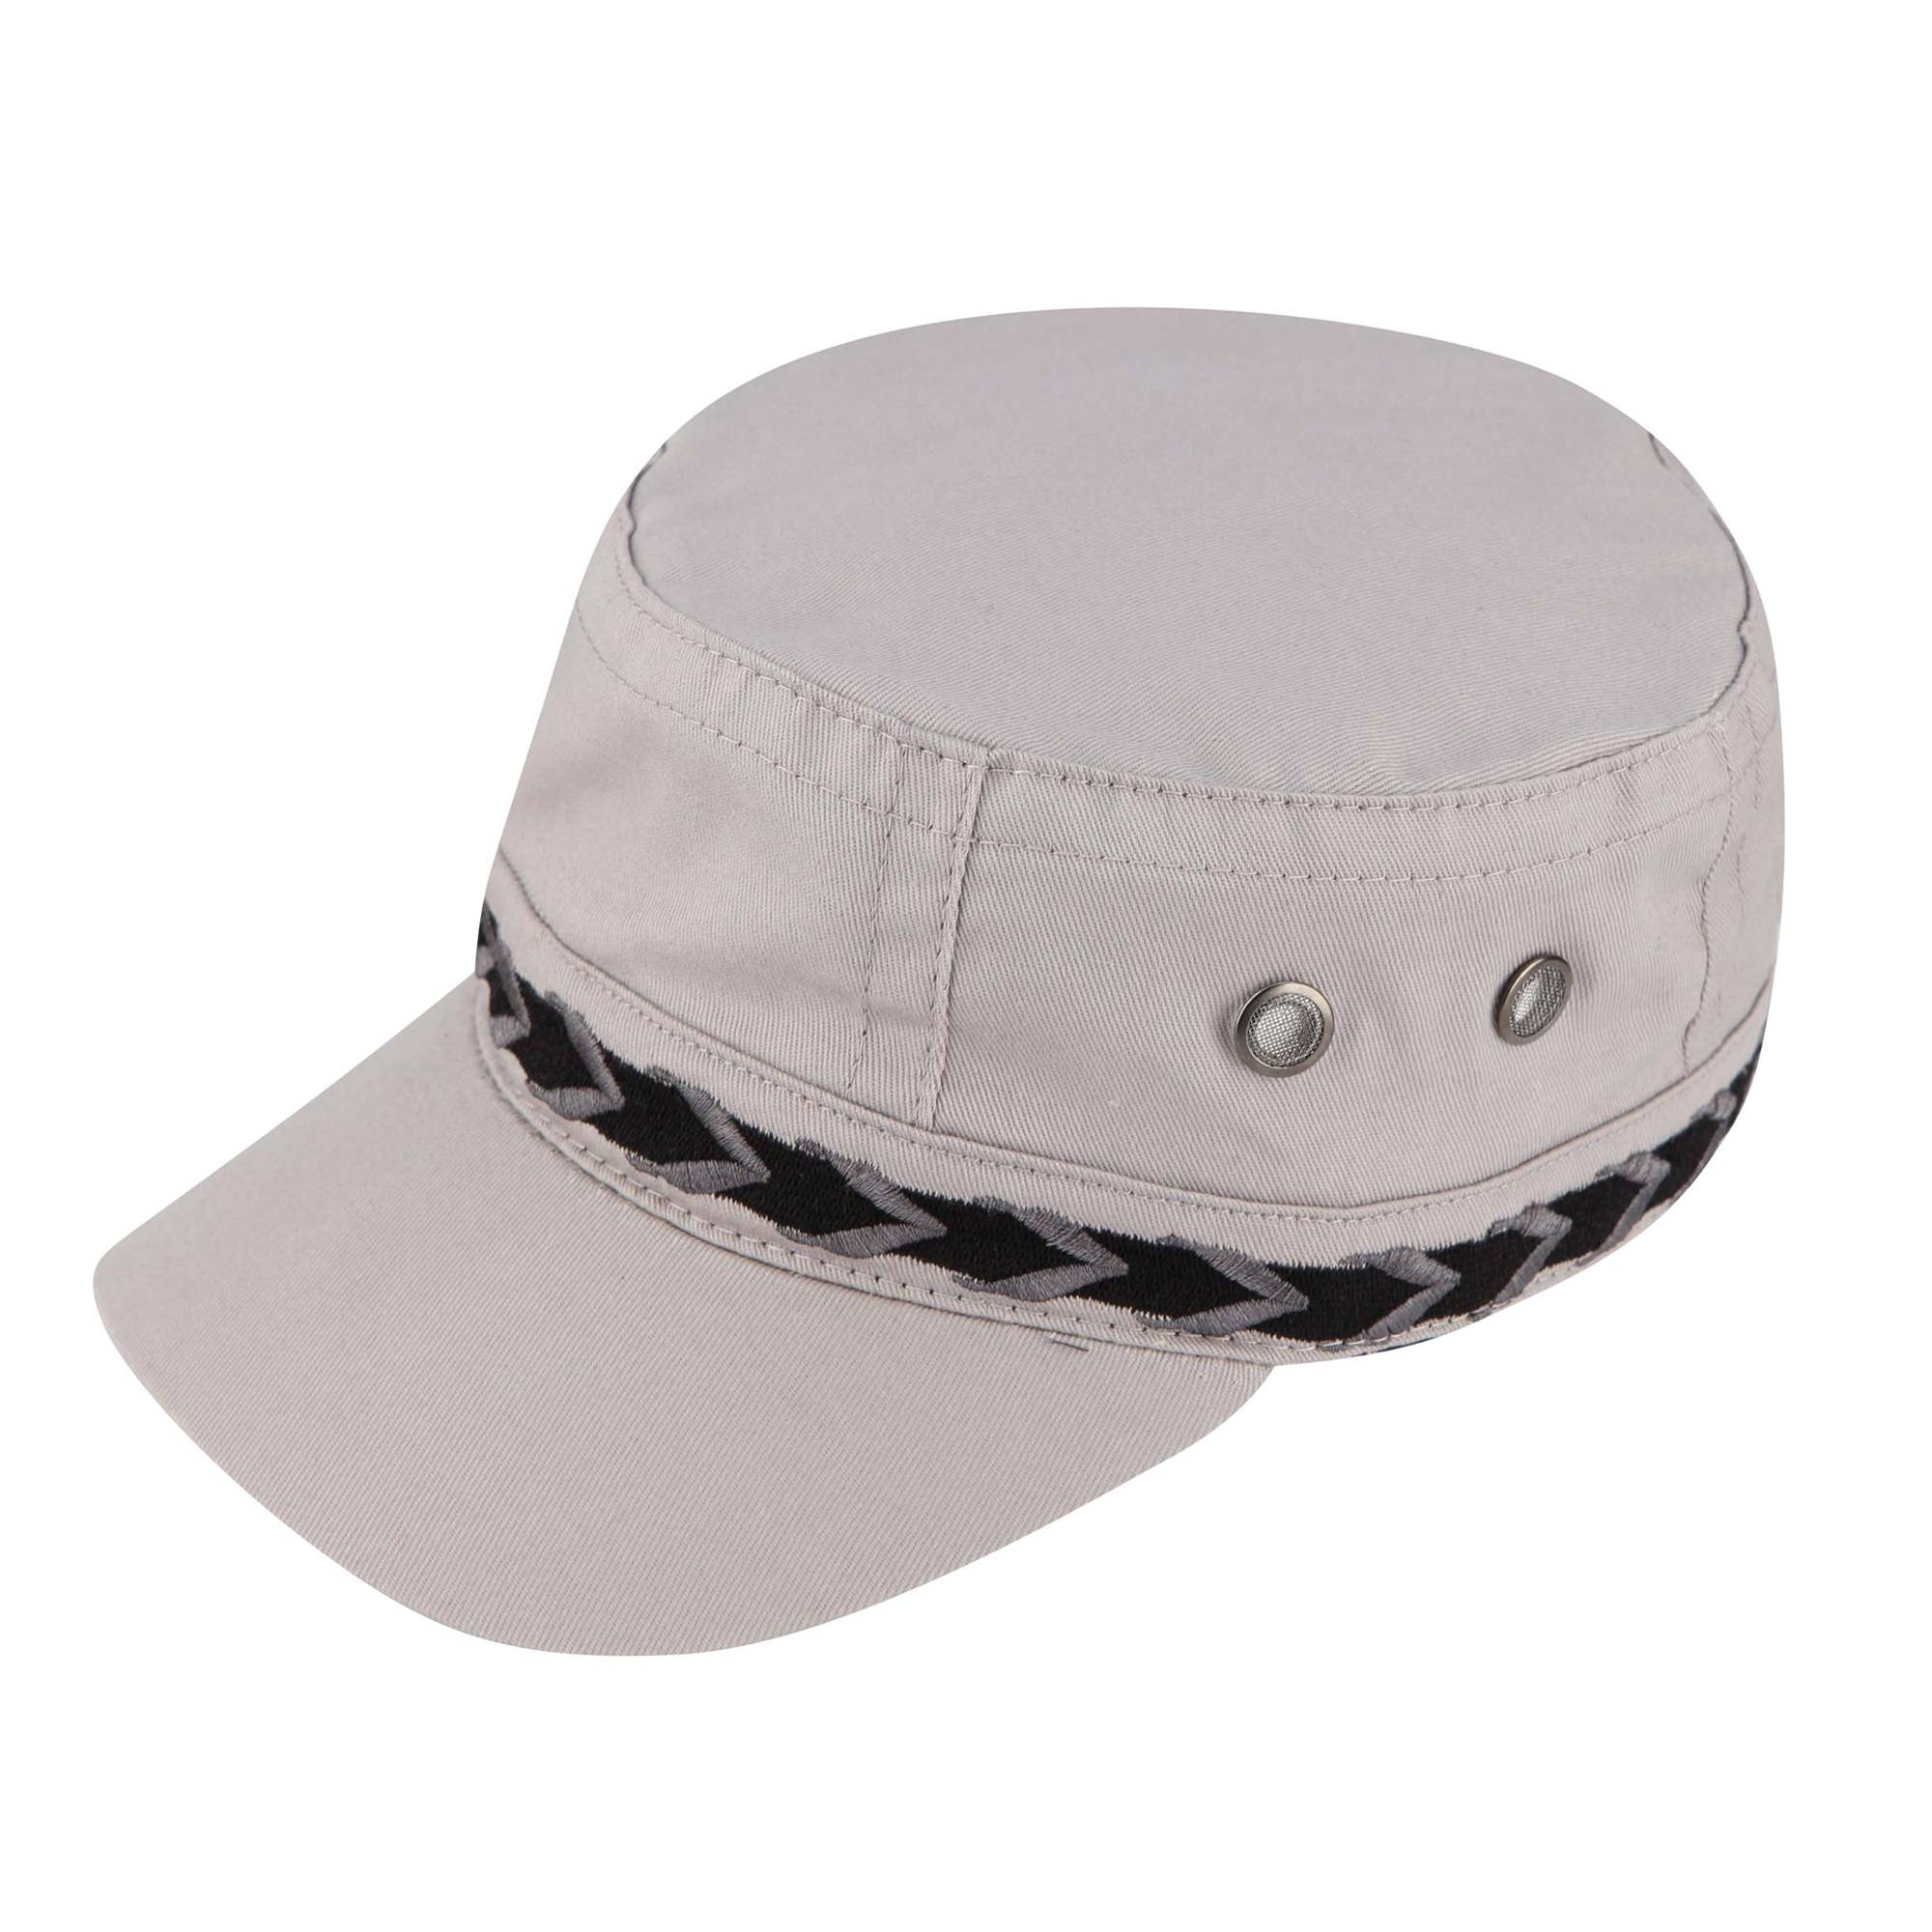 Irideon Cavalry Cap-Ladies